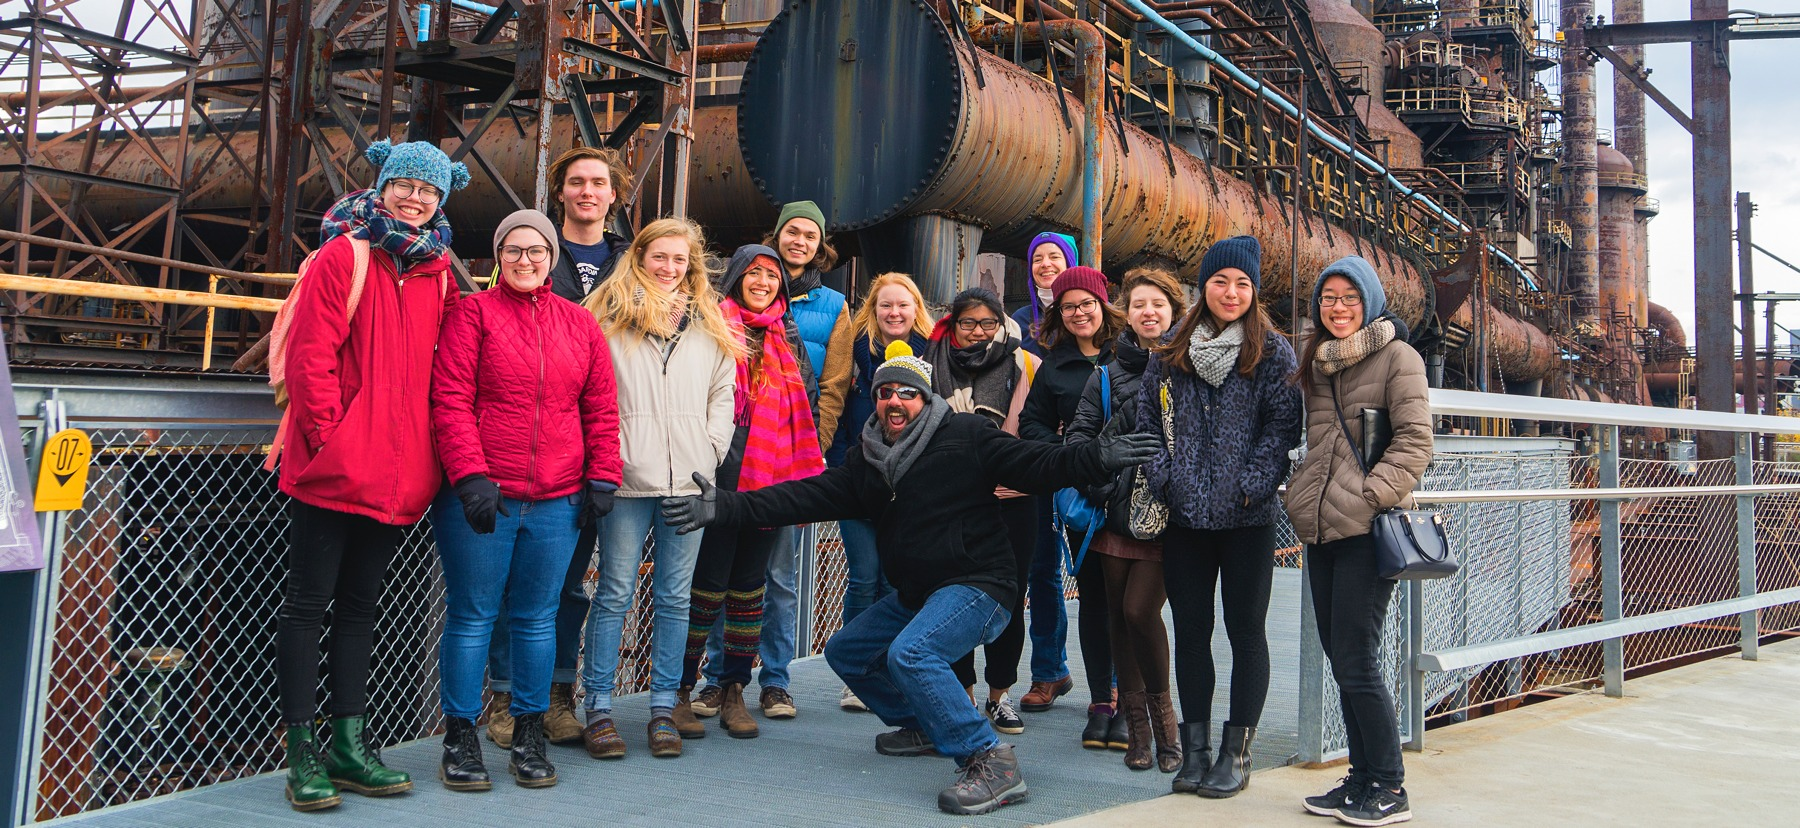 Group shot of students at steel mill